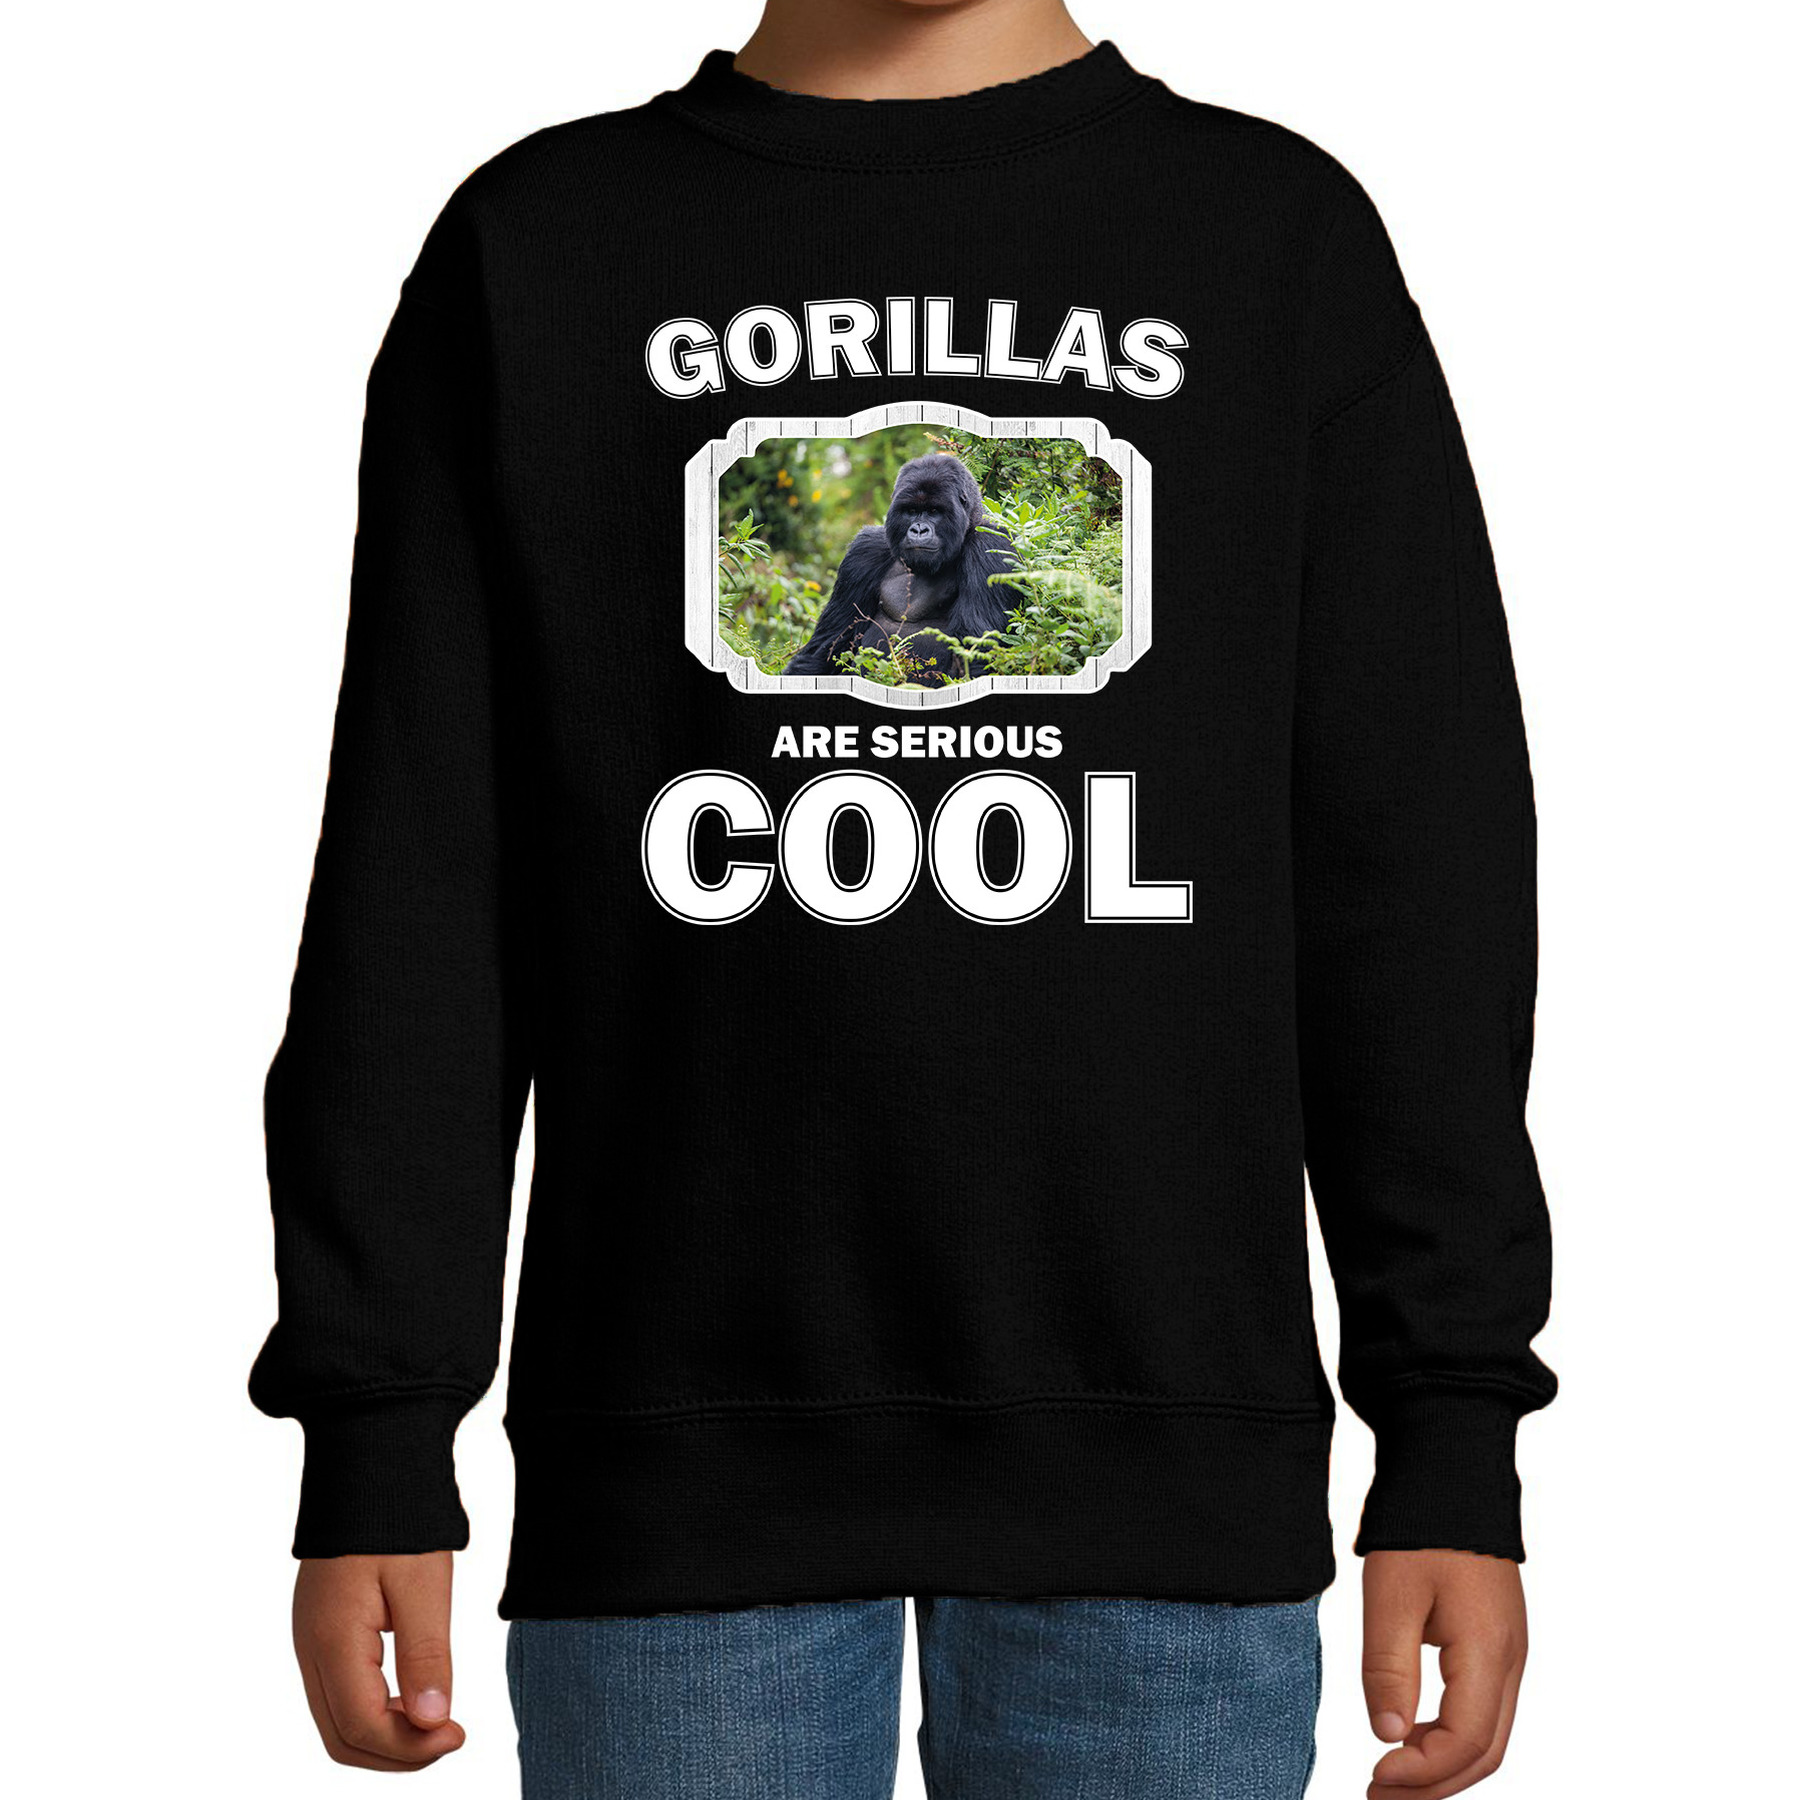 Sweater gorillas are serious cool zwart kinderen - gorilla apen/ gorilla trui